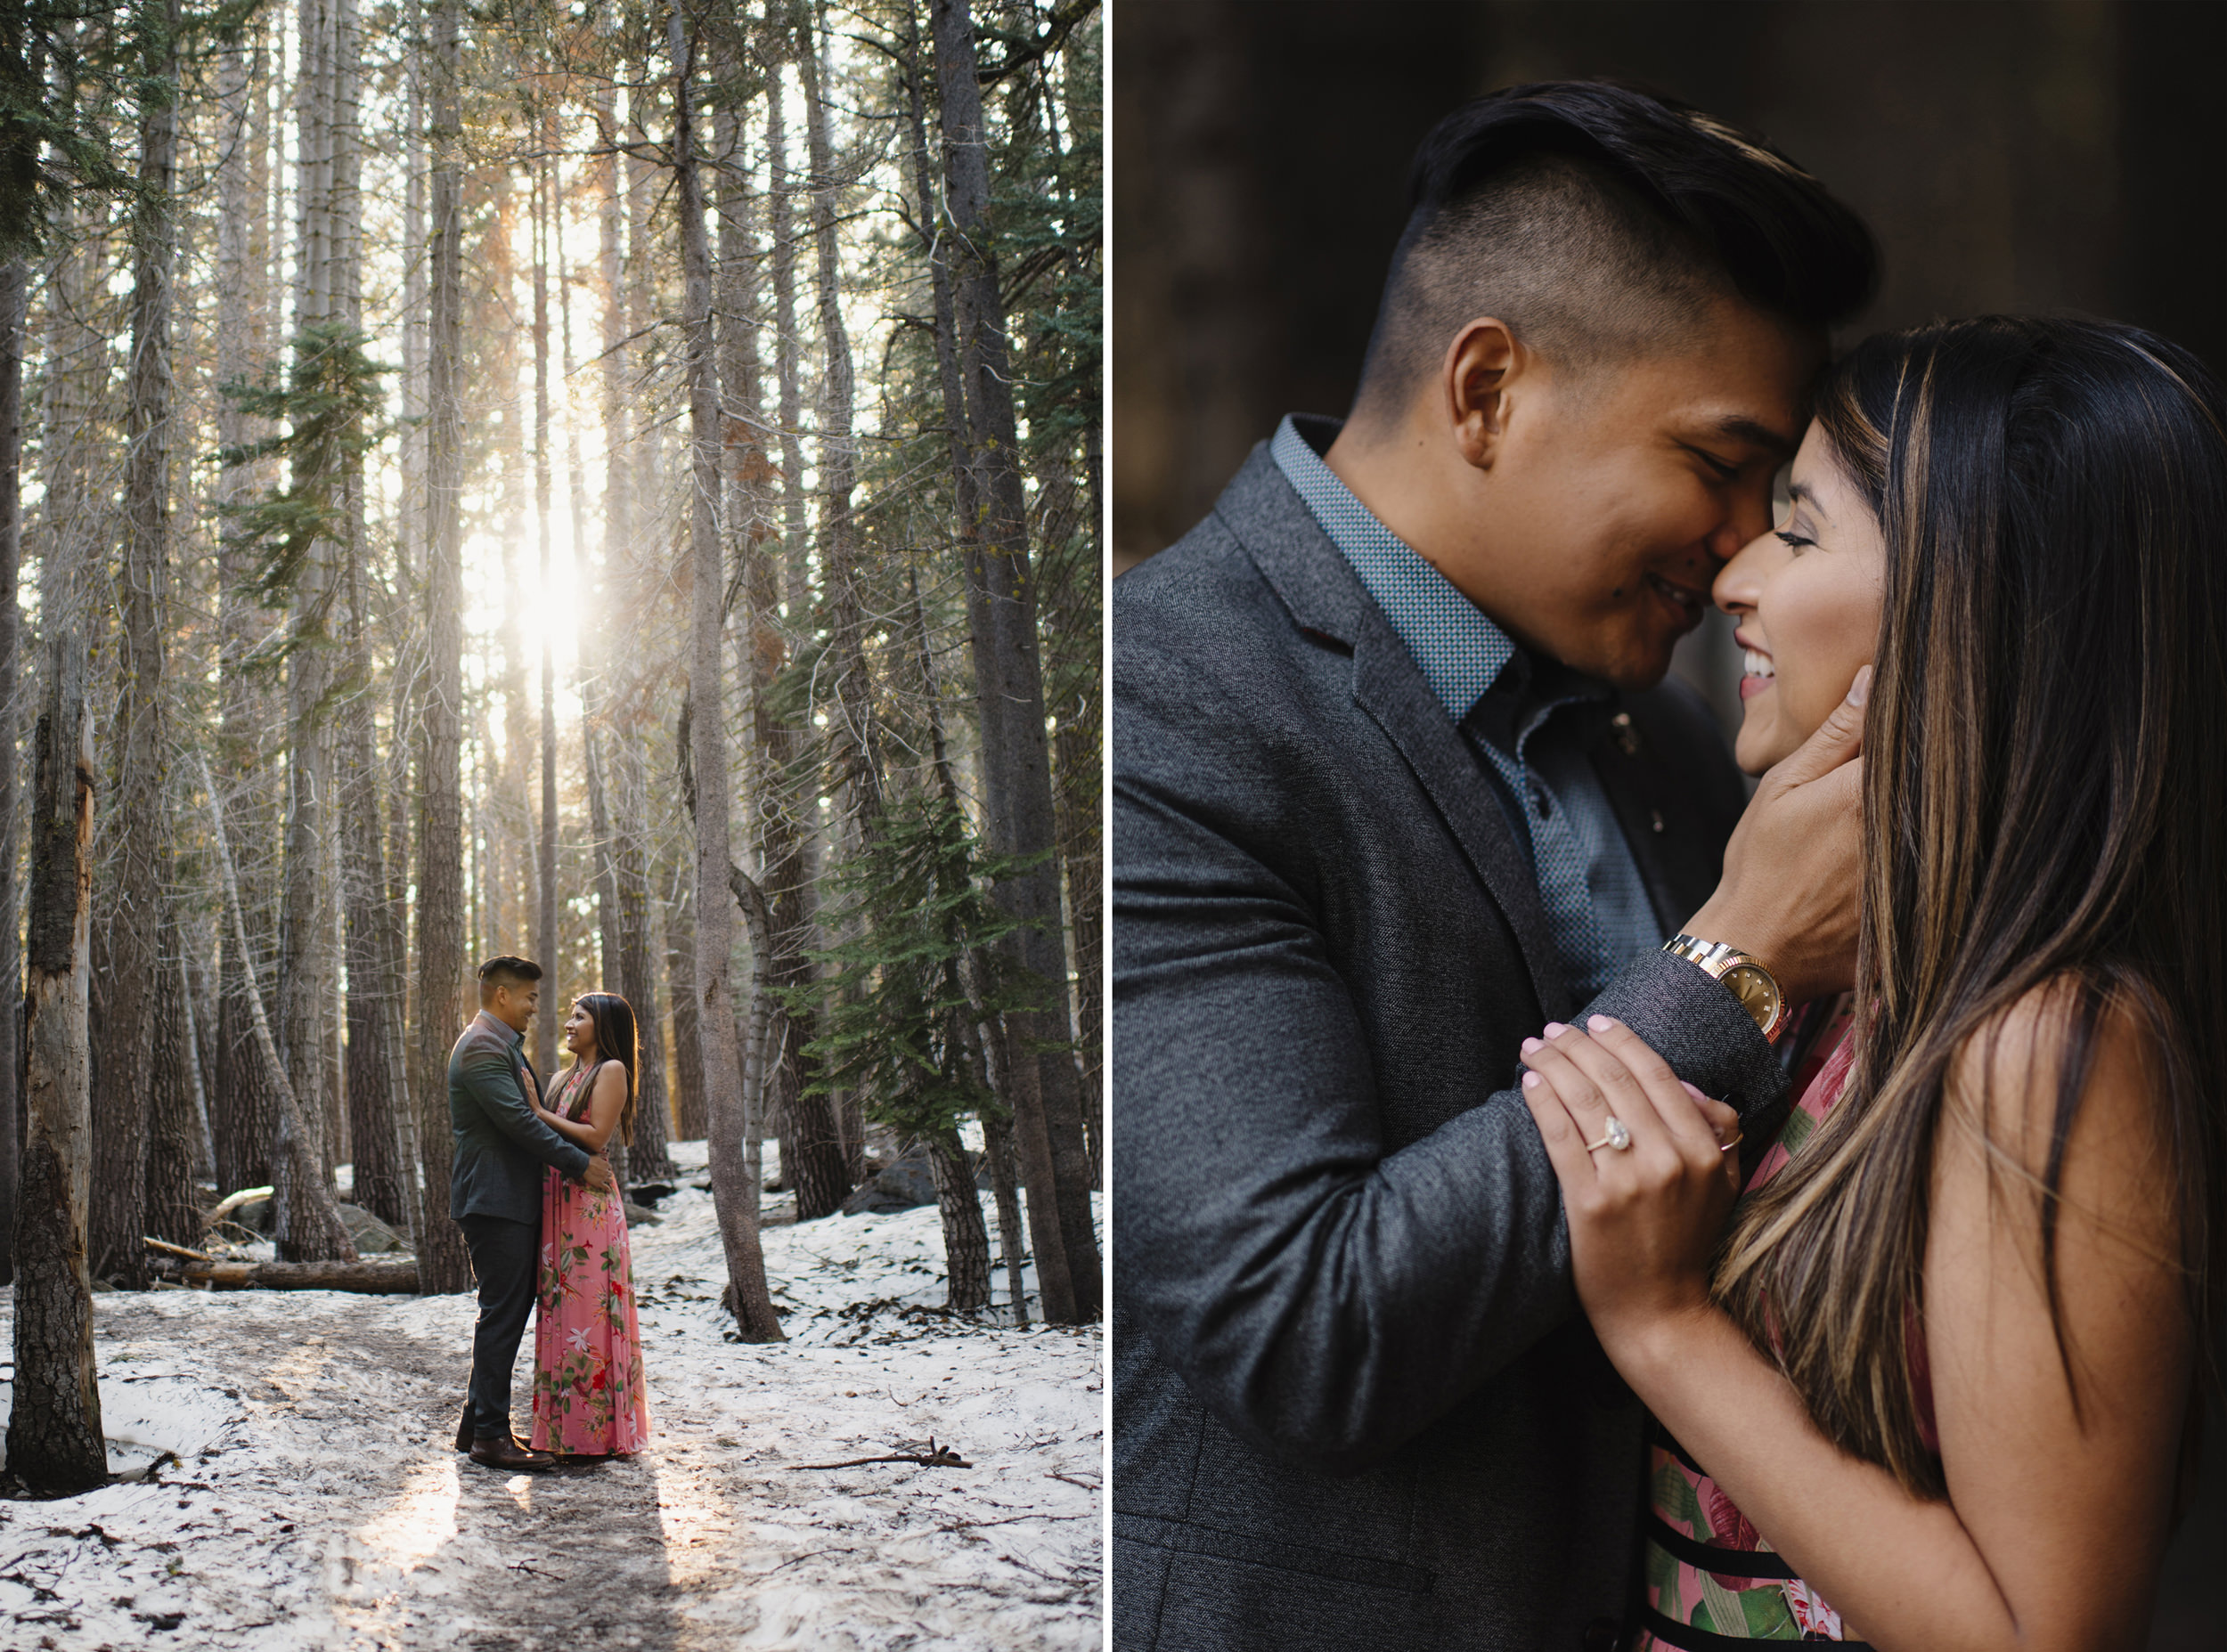 Engaged couple shares a romantic moment along Taft Point Trail in Yosemite